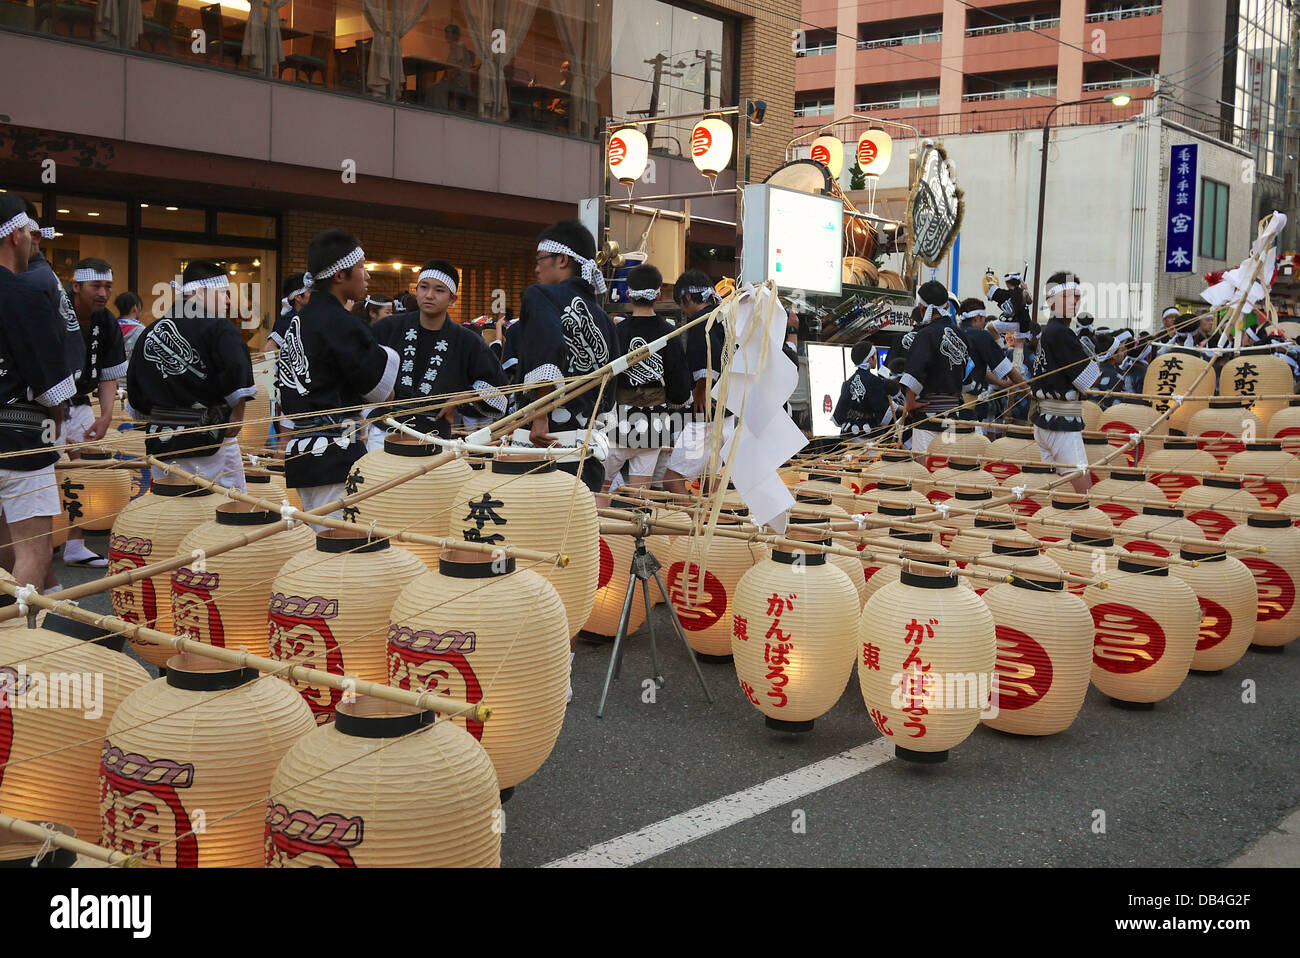 Participants of the Akita Kanto Festival with the lanterns waiting for the festival to begin - Stock Image